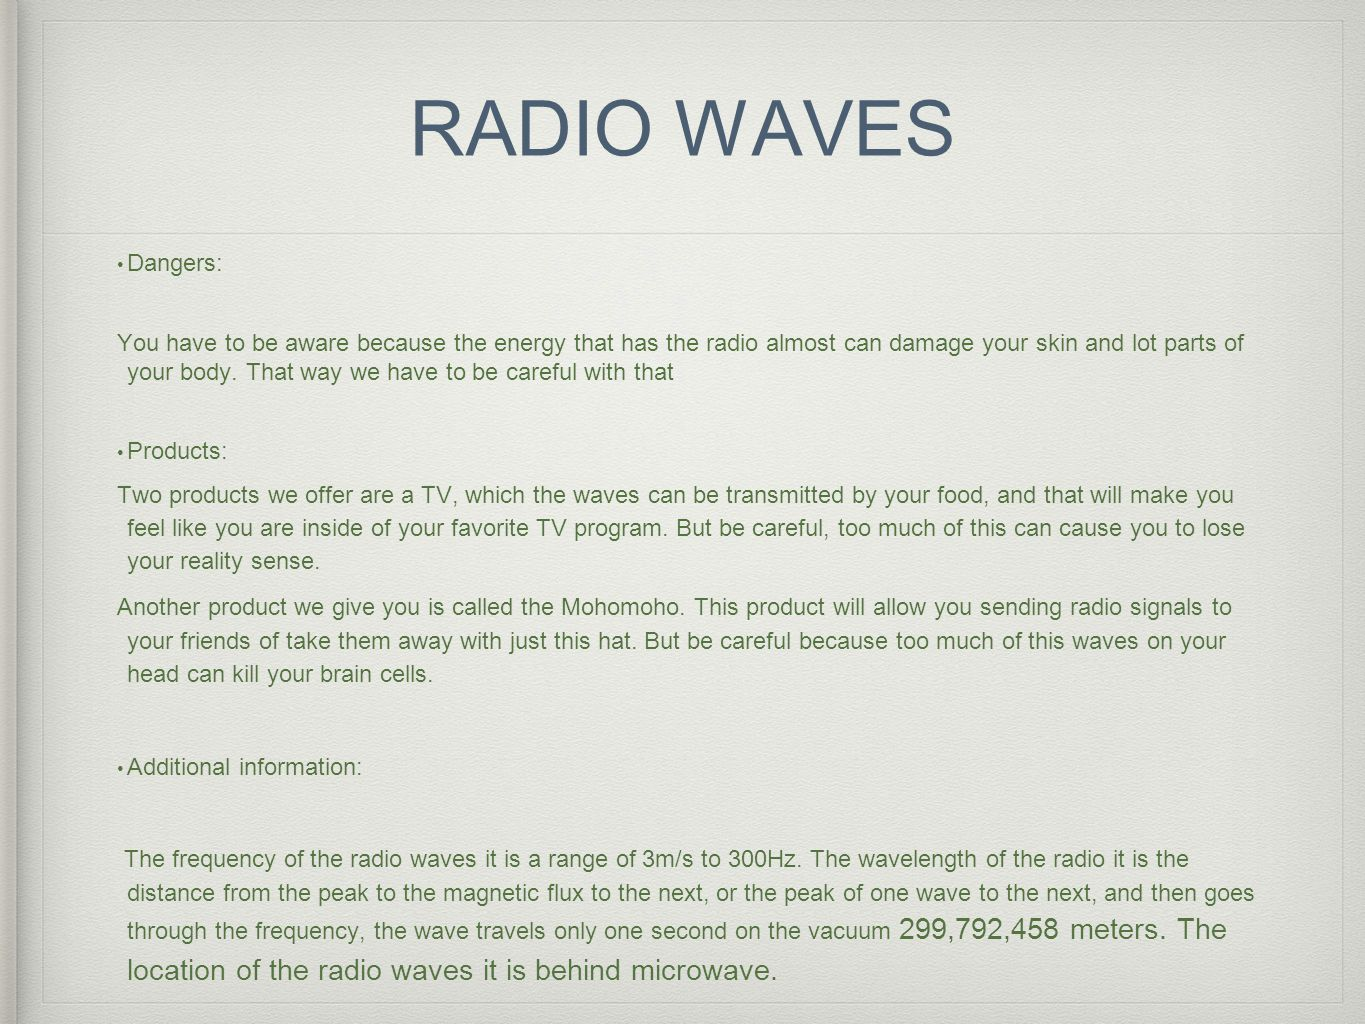 RADIO WAVES Dangers: You have to be aware because the energy that has the radio almost can damage your skin and lot parts of your body. That way we ha